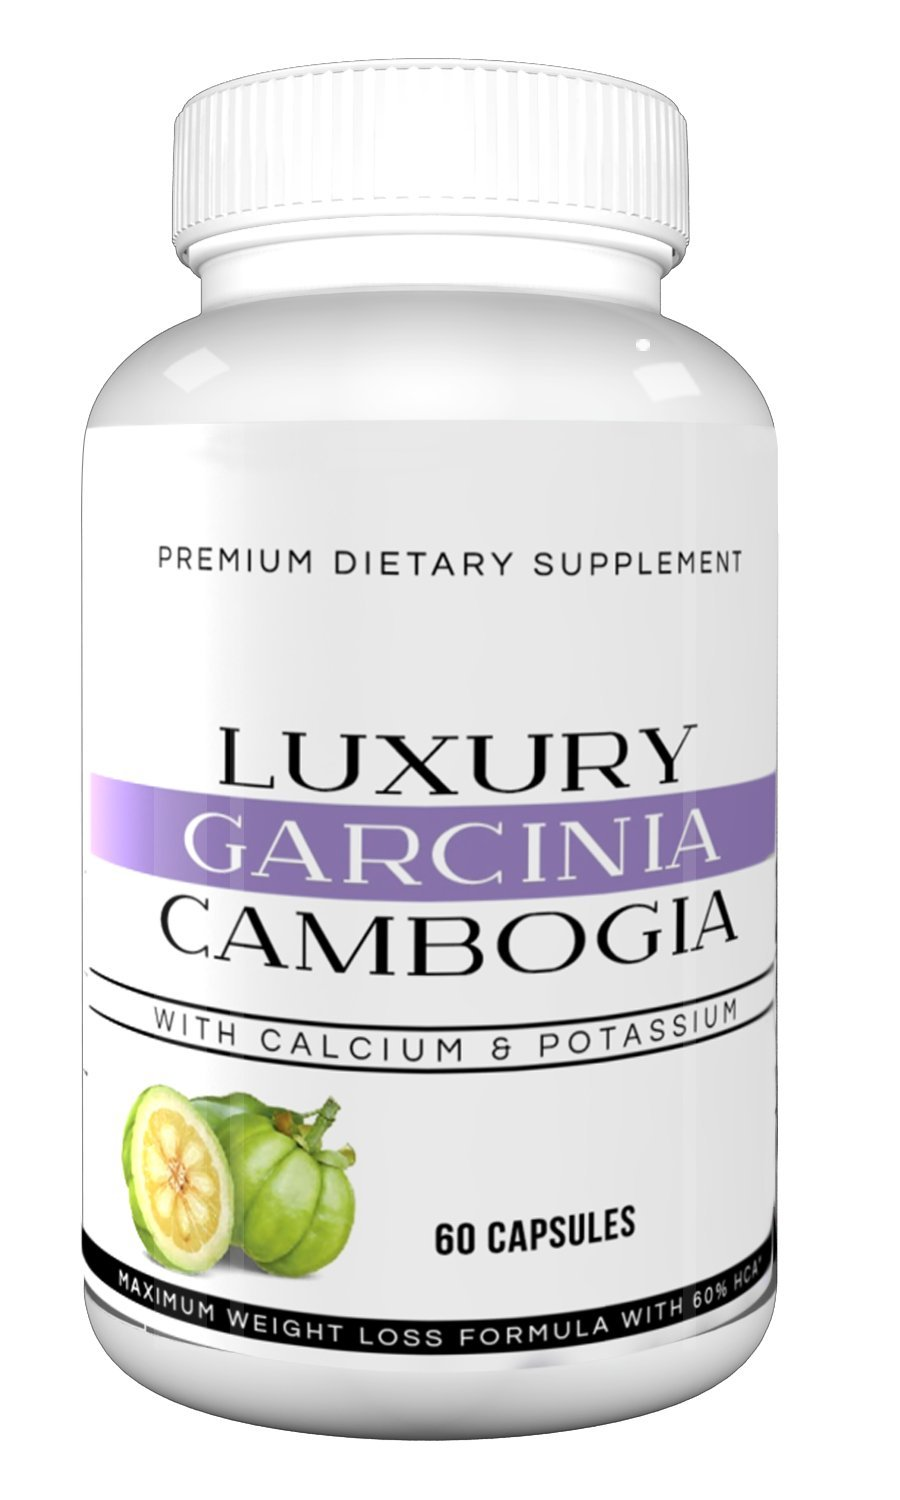 Luxury Garcinia Cambogia - 100% Premium Extra Strength Weight Loss Formula with HCA, All Natural Appetite Suppressant, Fat Blocking and Metabolism Boosting Formula, Non-GMO, Gluten Free, Dairy Free by Ultra Premium Garcinia Cambogia